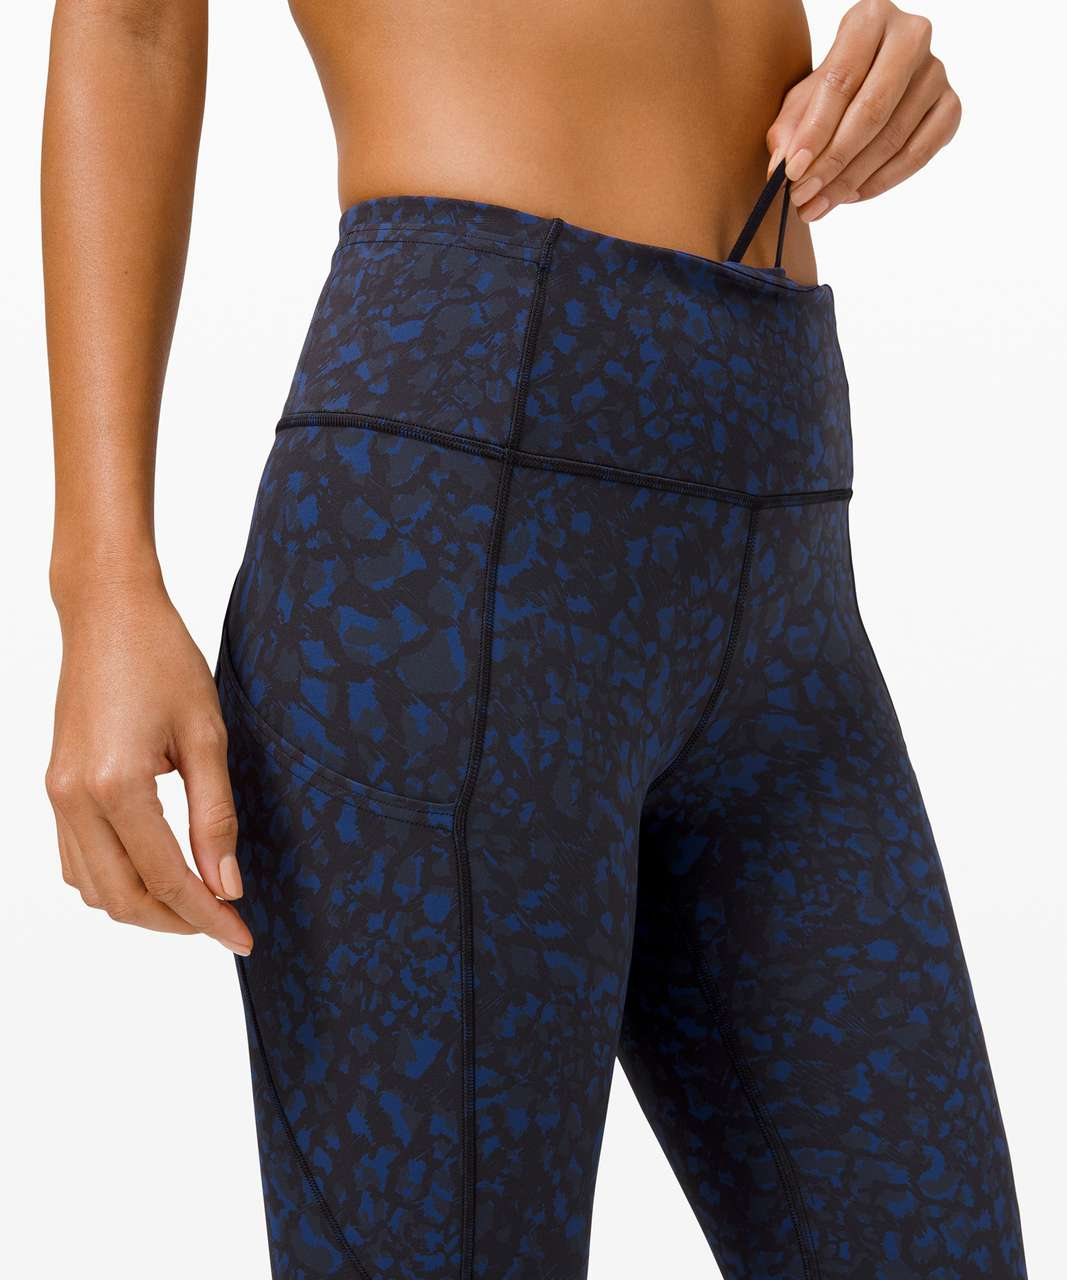 "Lululemon Fast and Free Crop II 19"" *Non-Reflective - Wild Thing Camo Larkspur Multi"